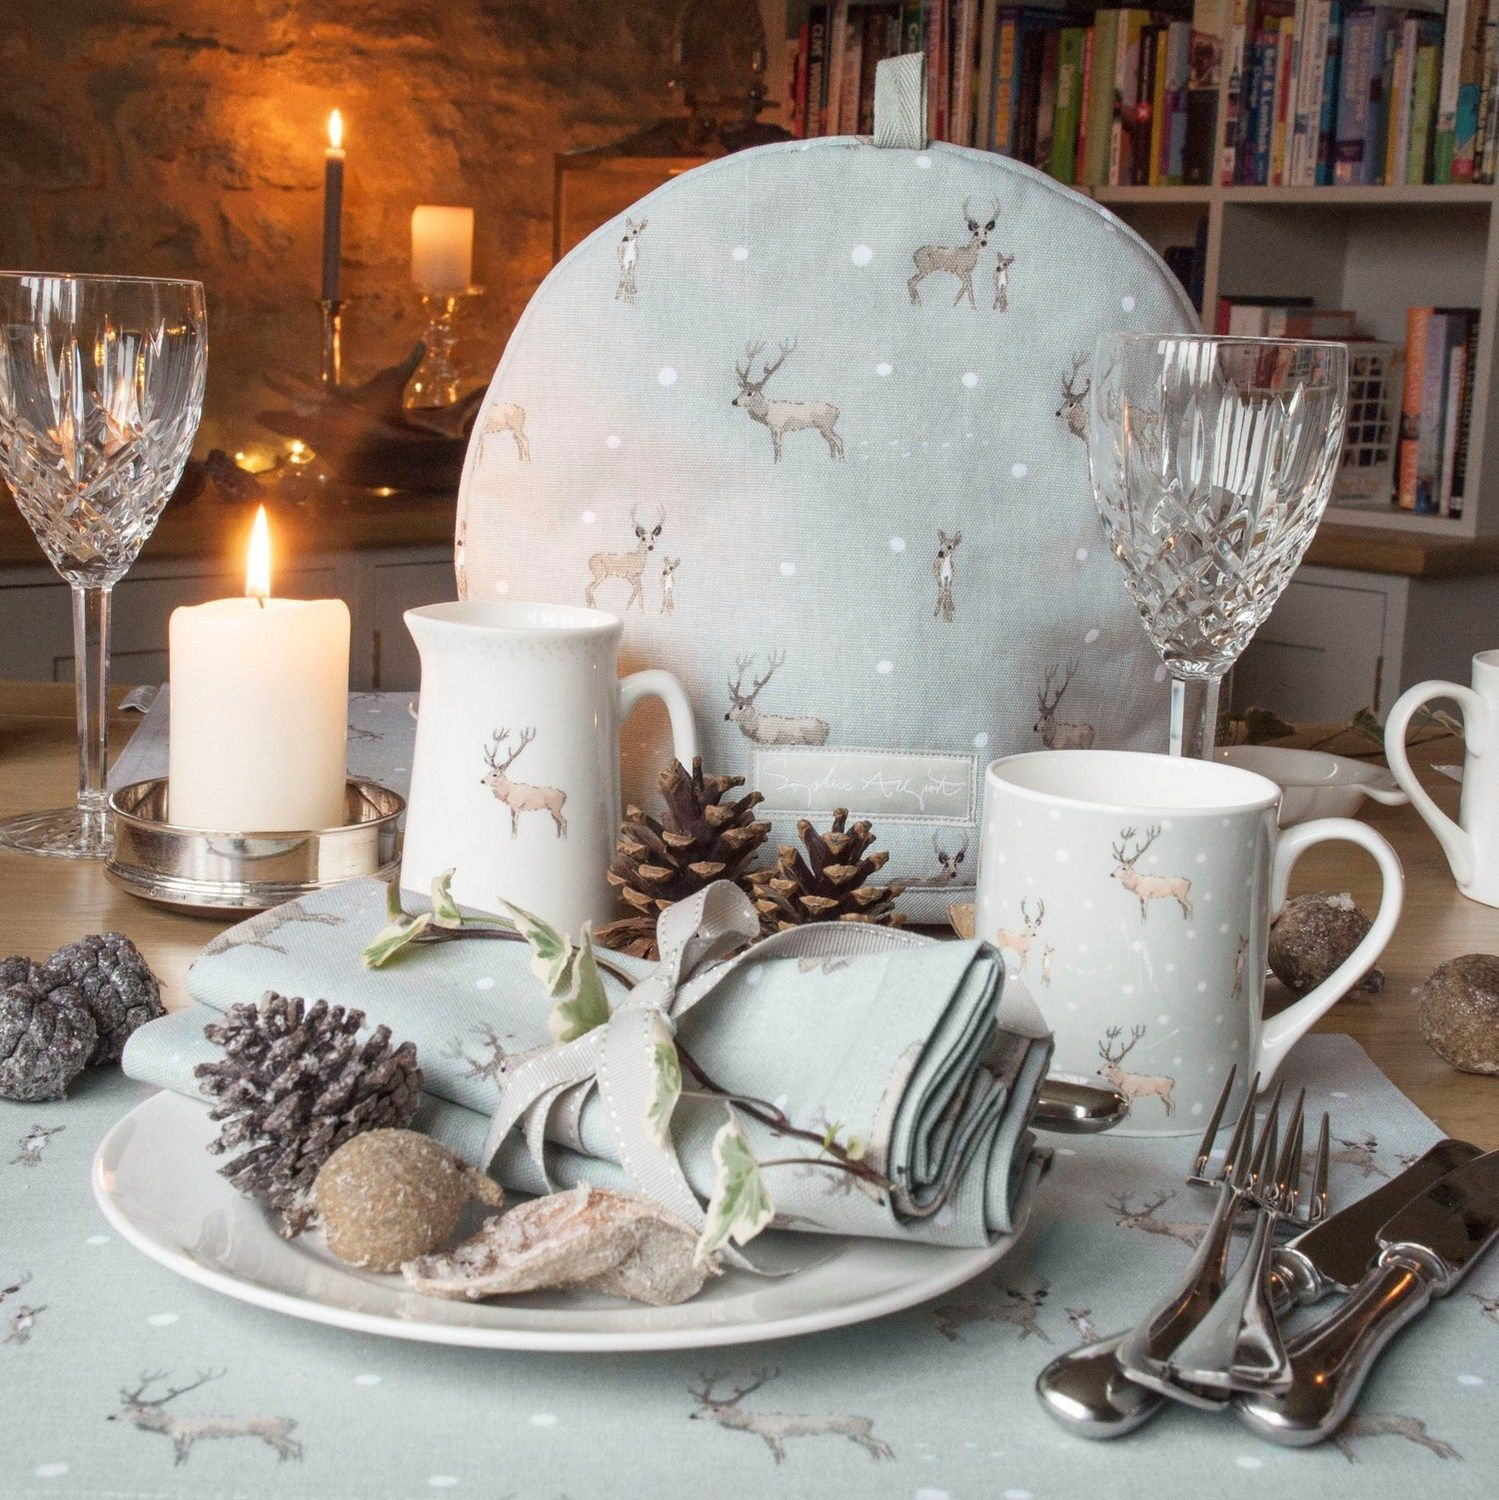 Decorate Your Dinning With These Lovely Christmas Chair: 'Stag' From Sophie Allport (With Images